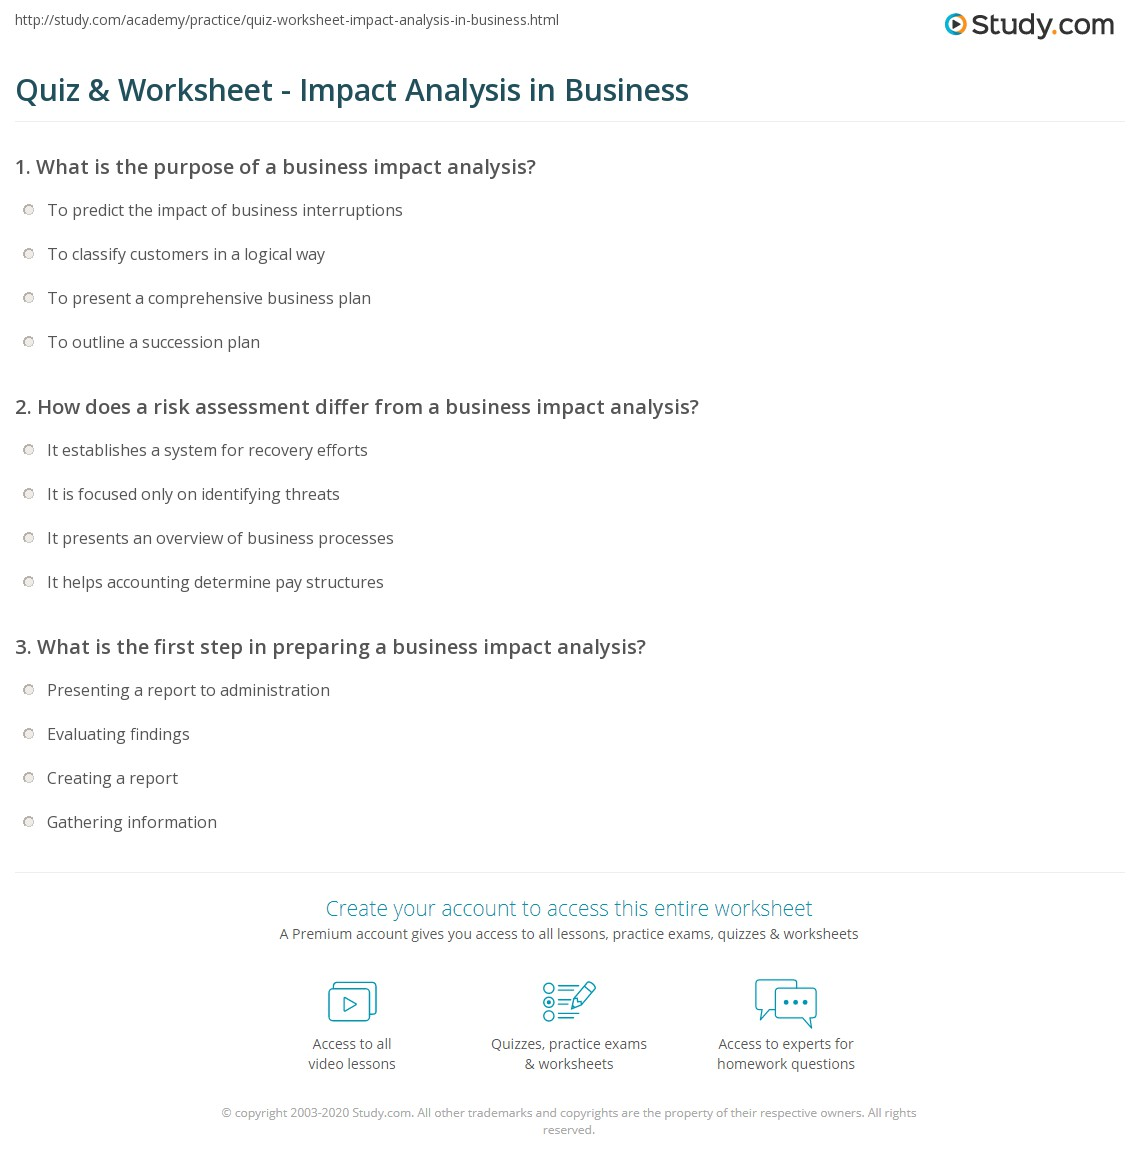 Quiz & Worksheet - Impact Analysis in Business | Study.com